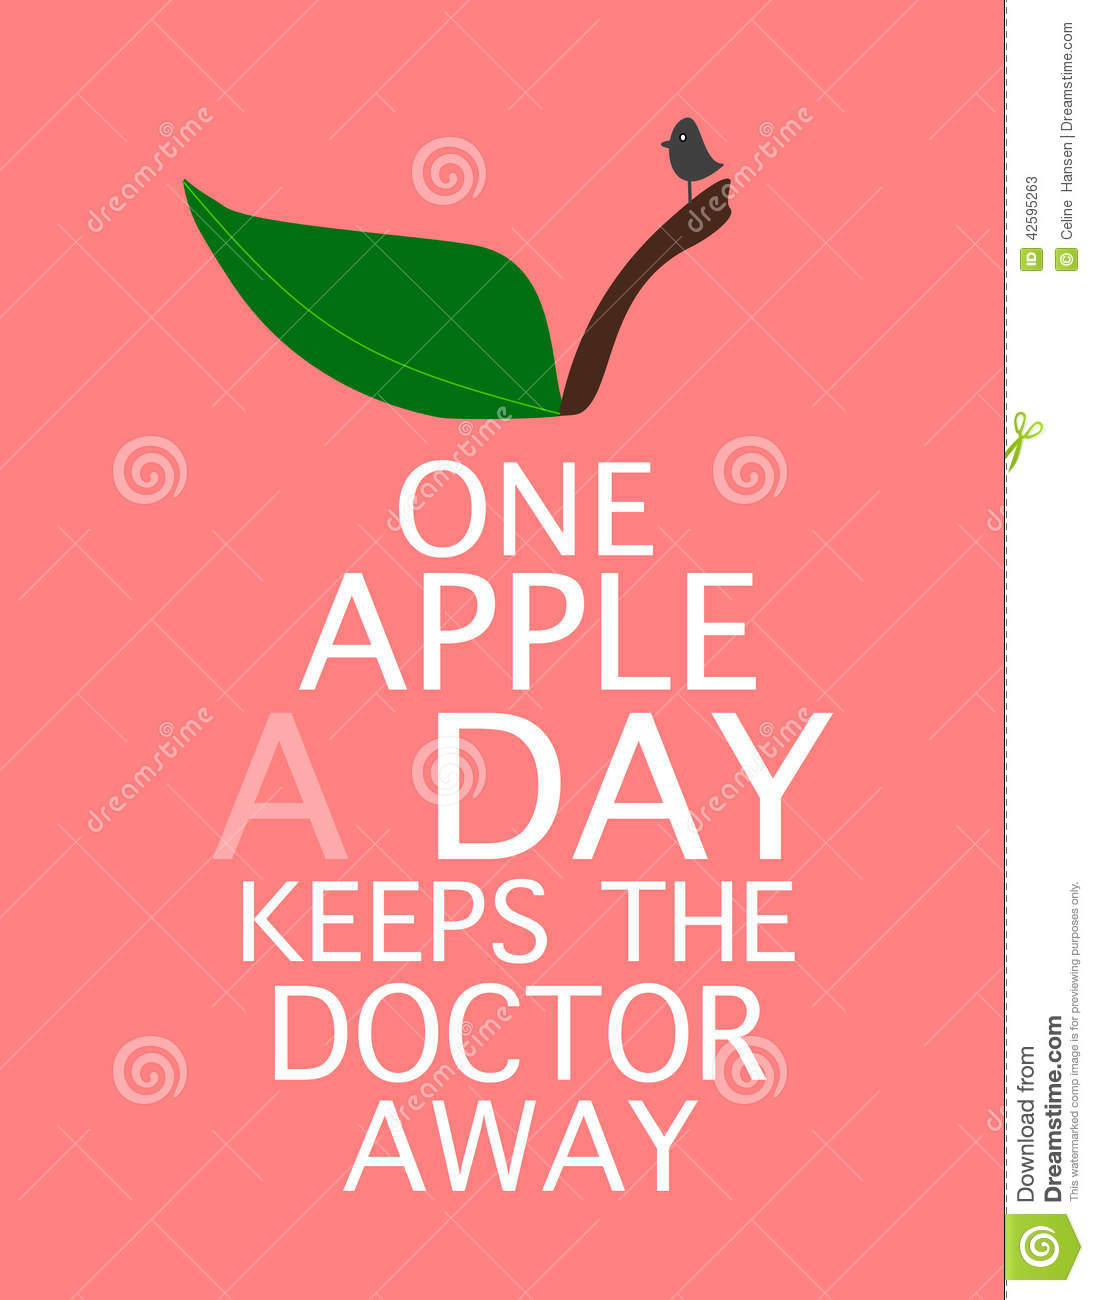 an apple a day keeps the An apple a day keeps the doctor away 6,239 likes 10 talking about this an apple a day keeps the doctor away.